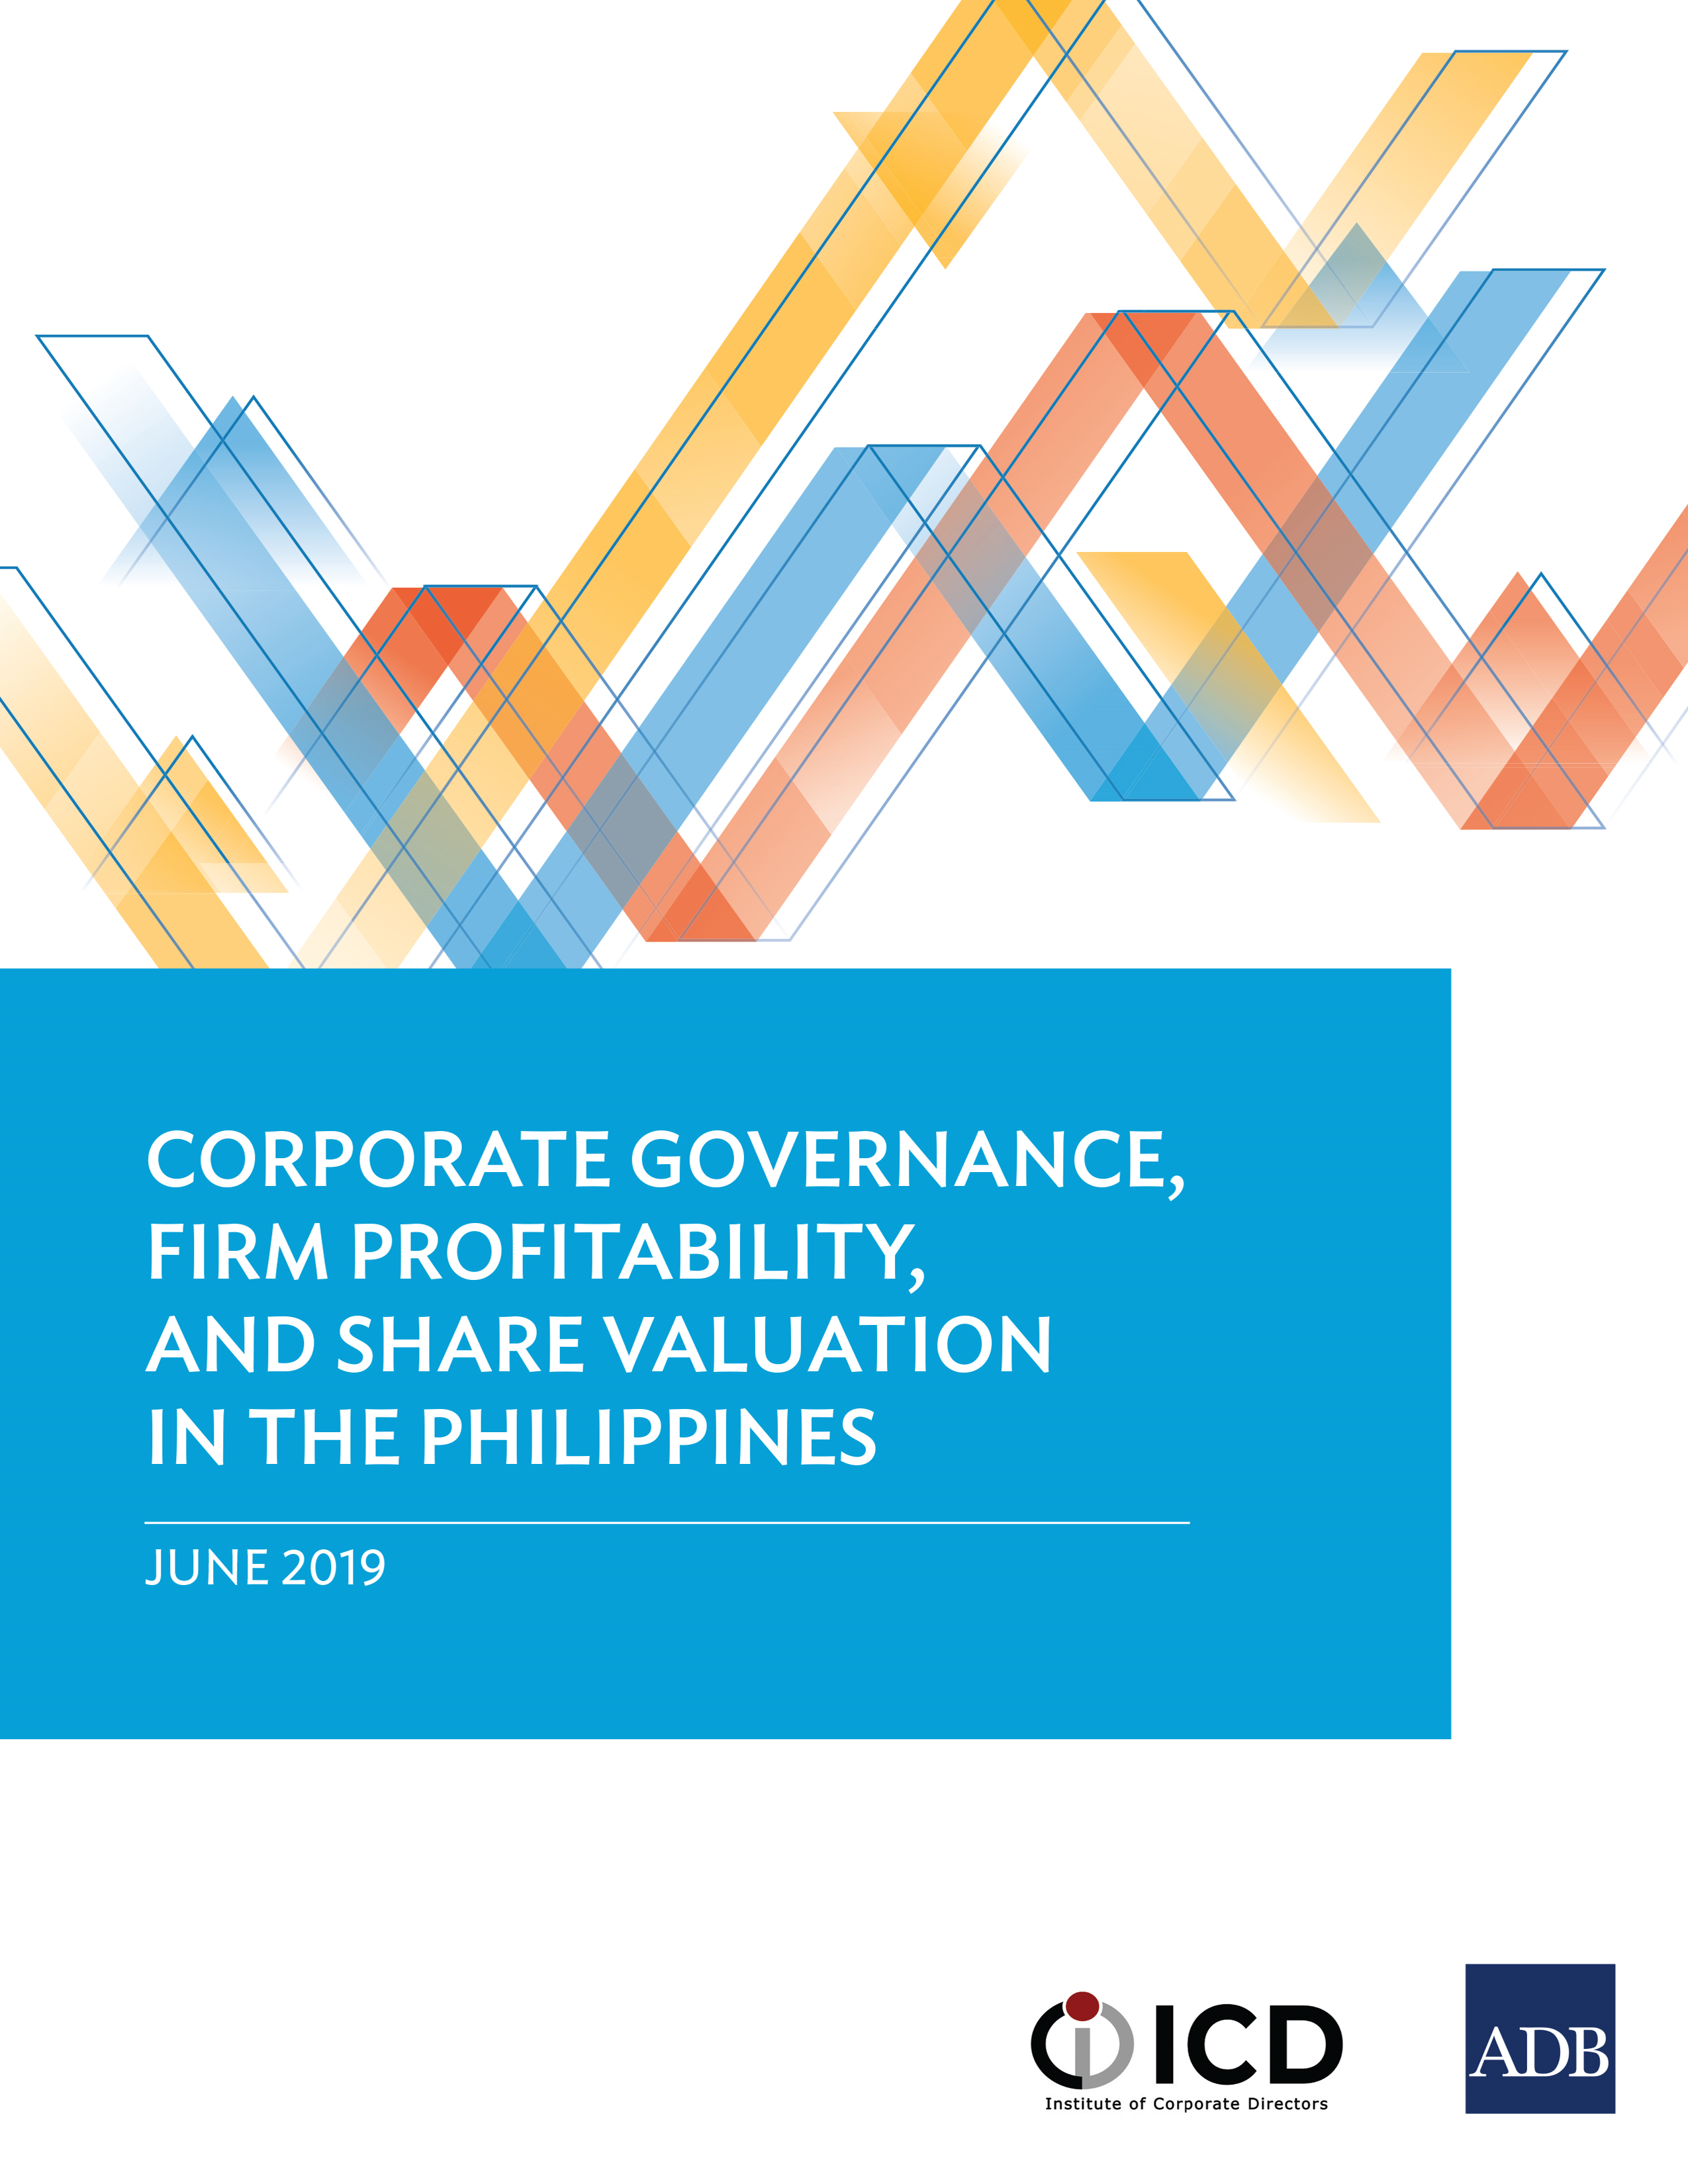 Corporate Governance, Firm Profitability, and Share Valuation in the Philippines